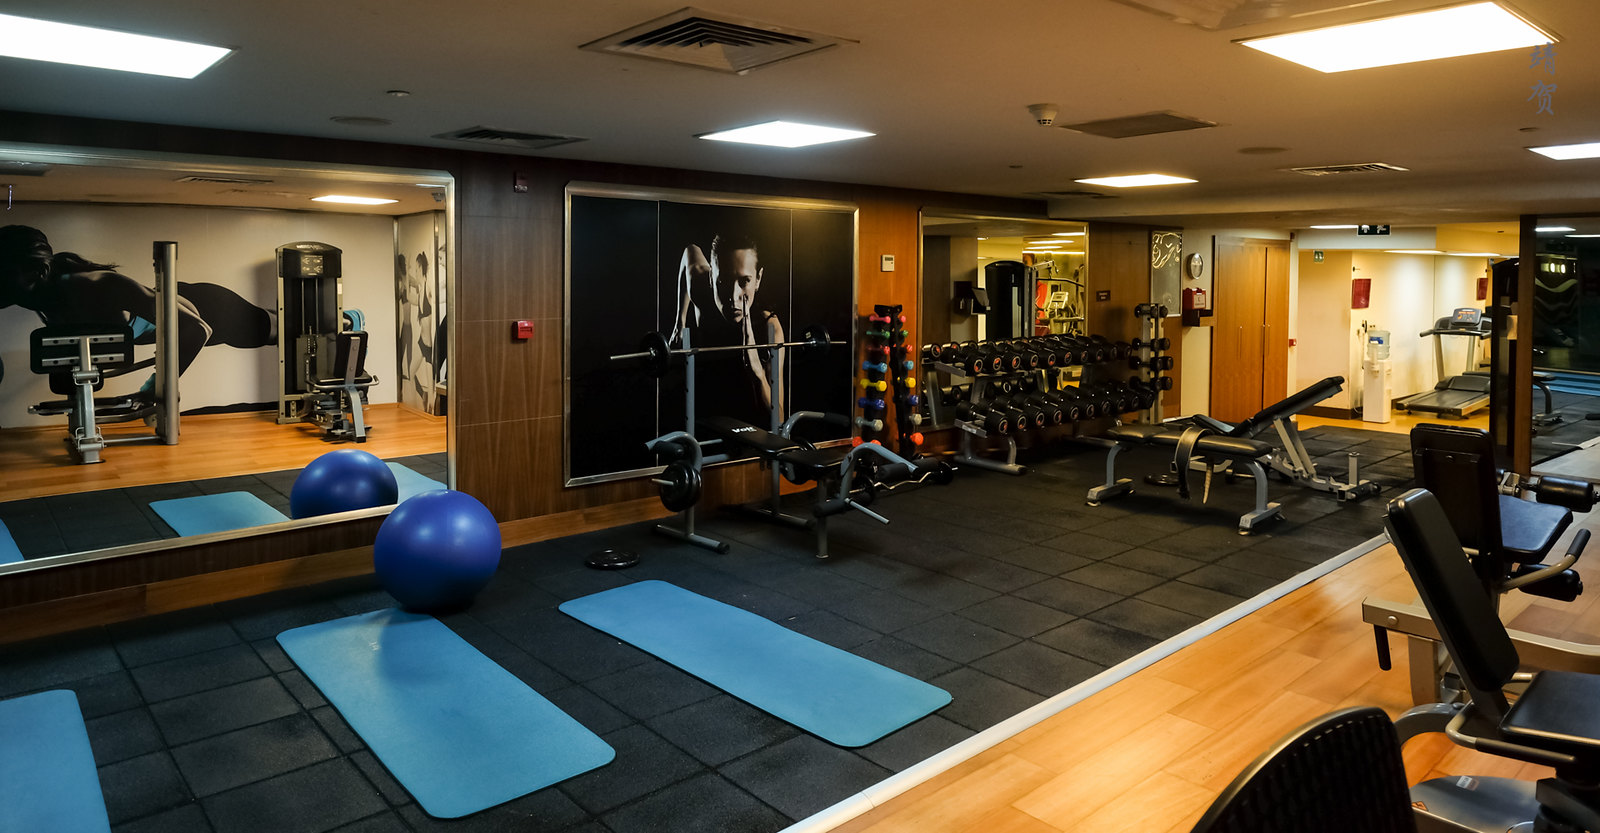 Weights and mats in the fitness centre